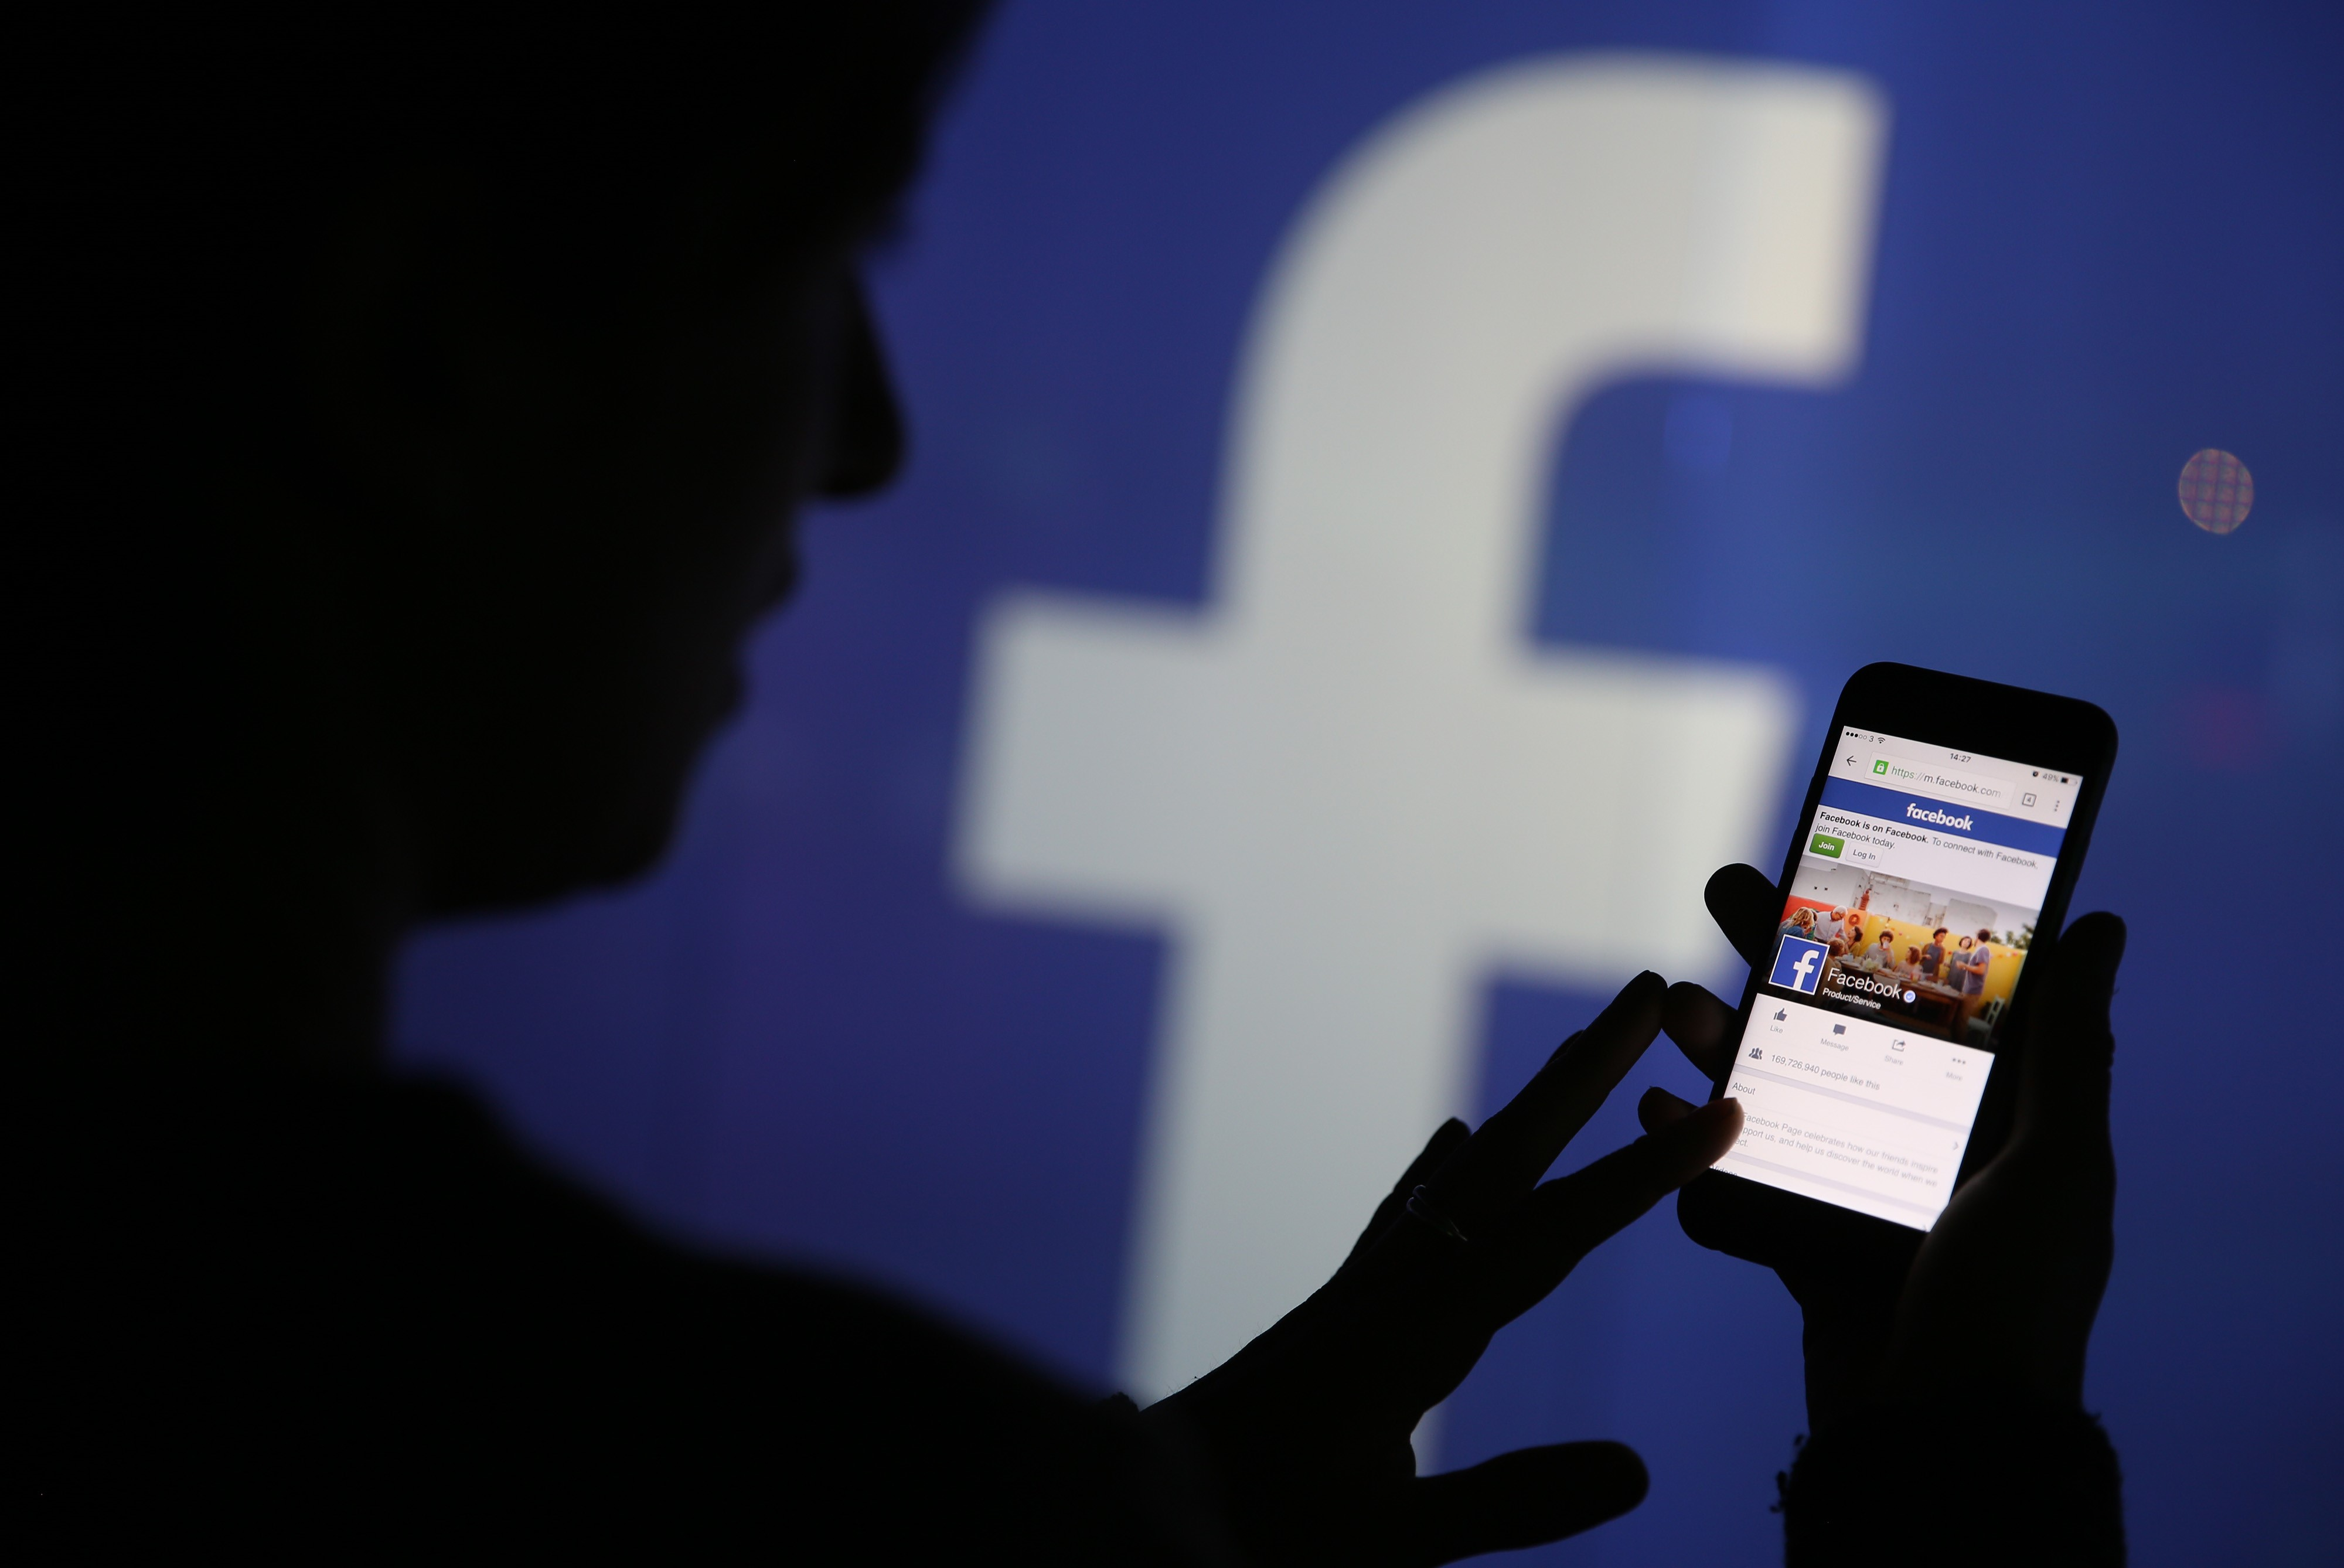 Facebook can locate users who opt out of tracking